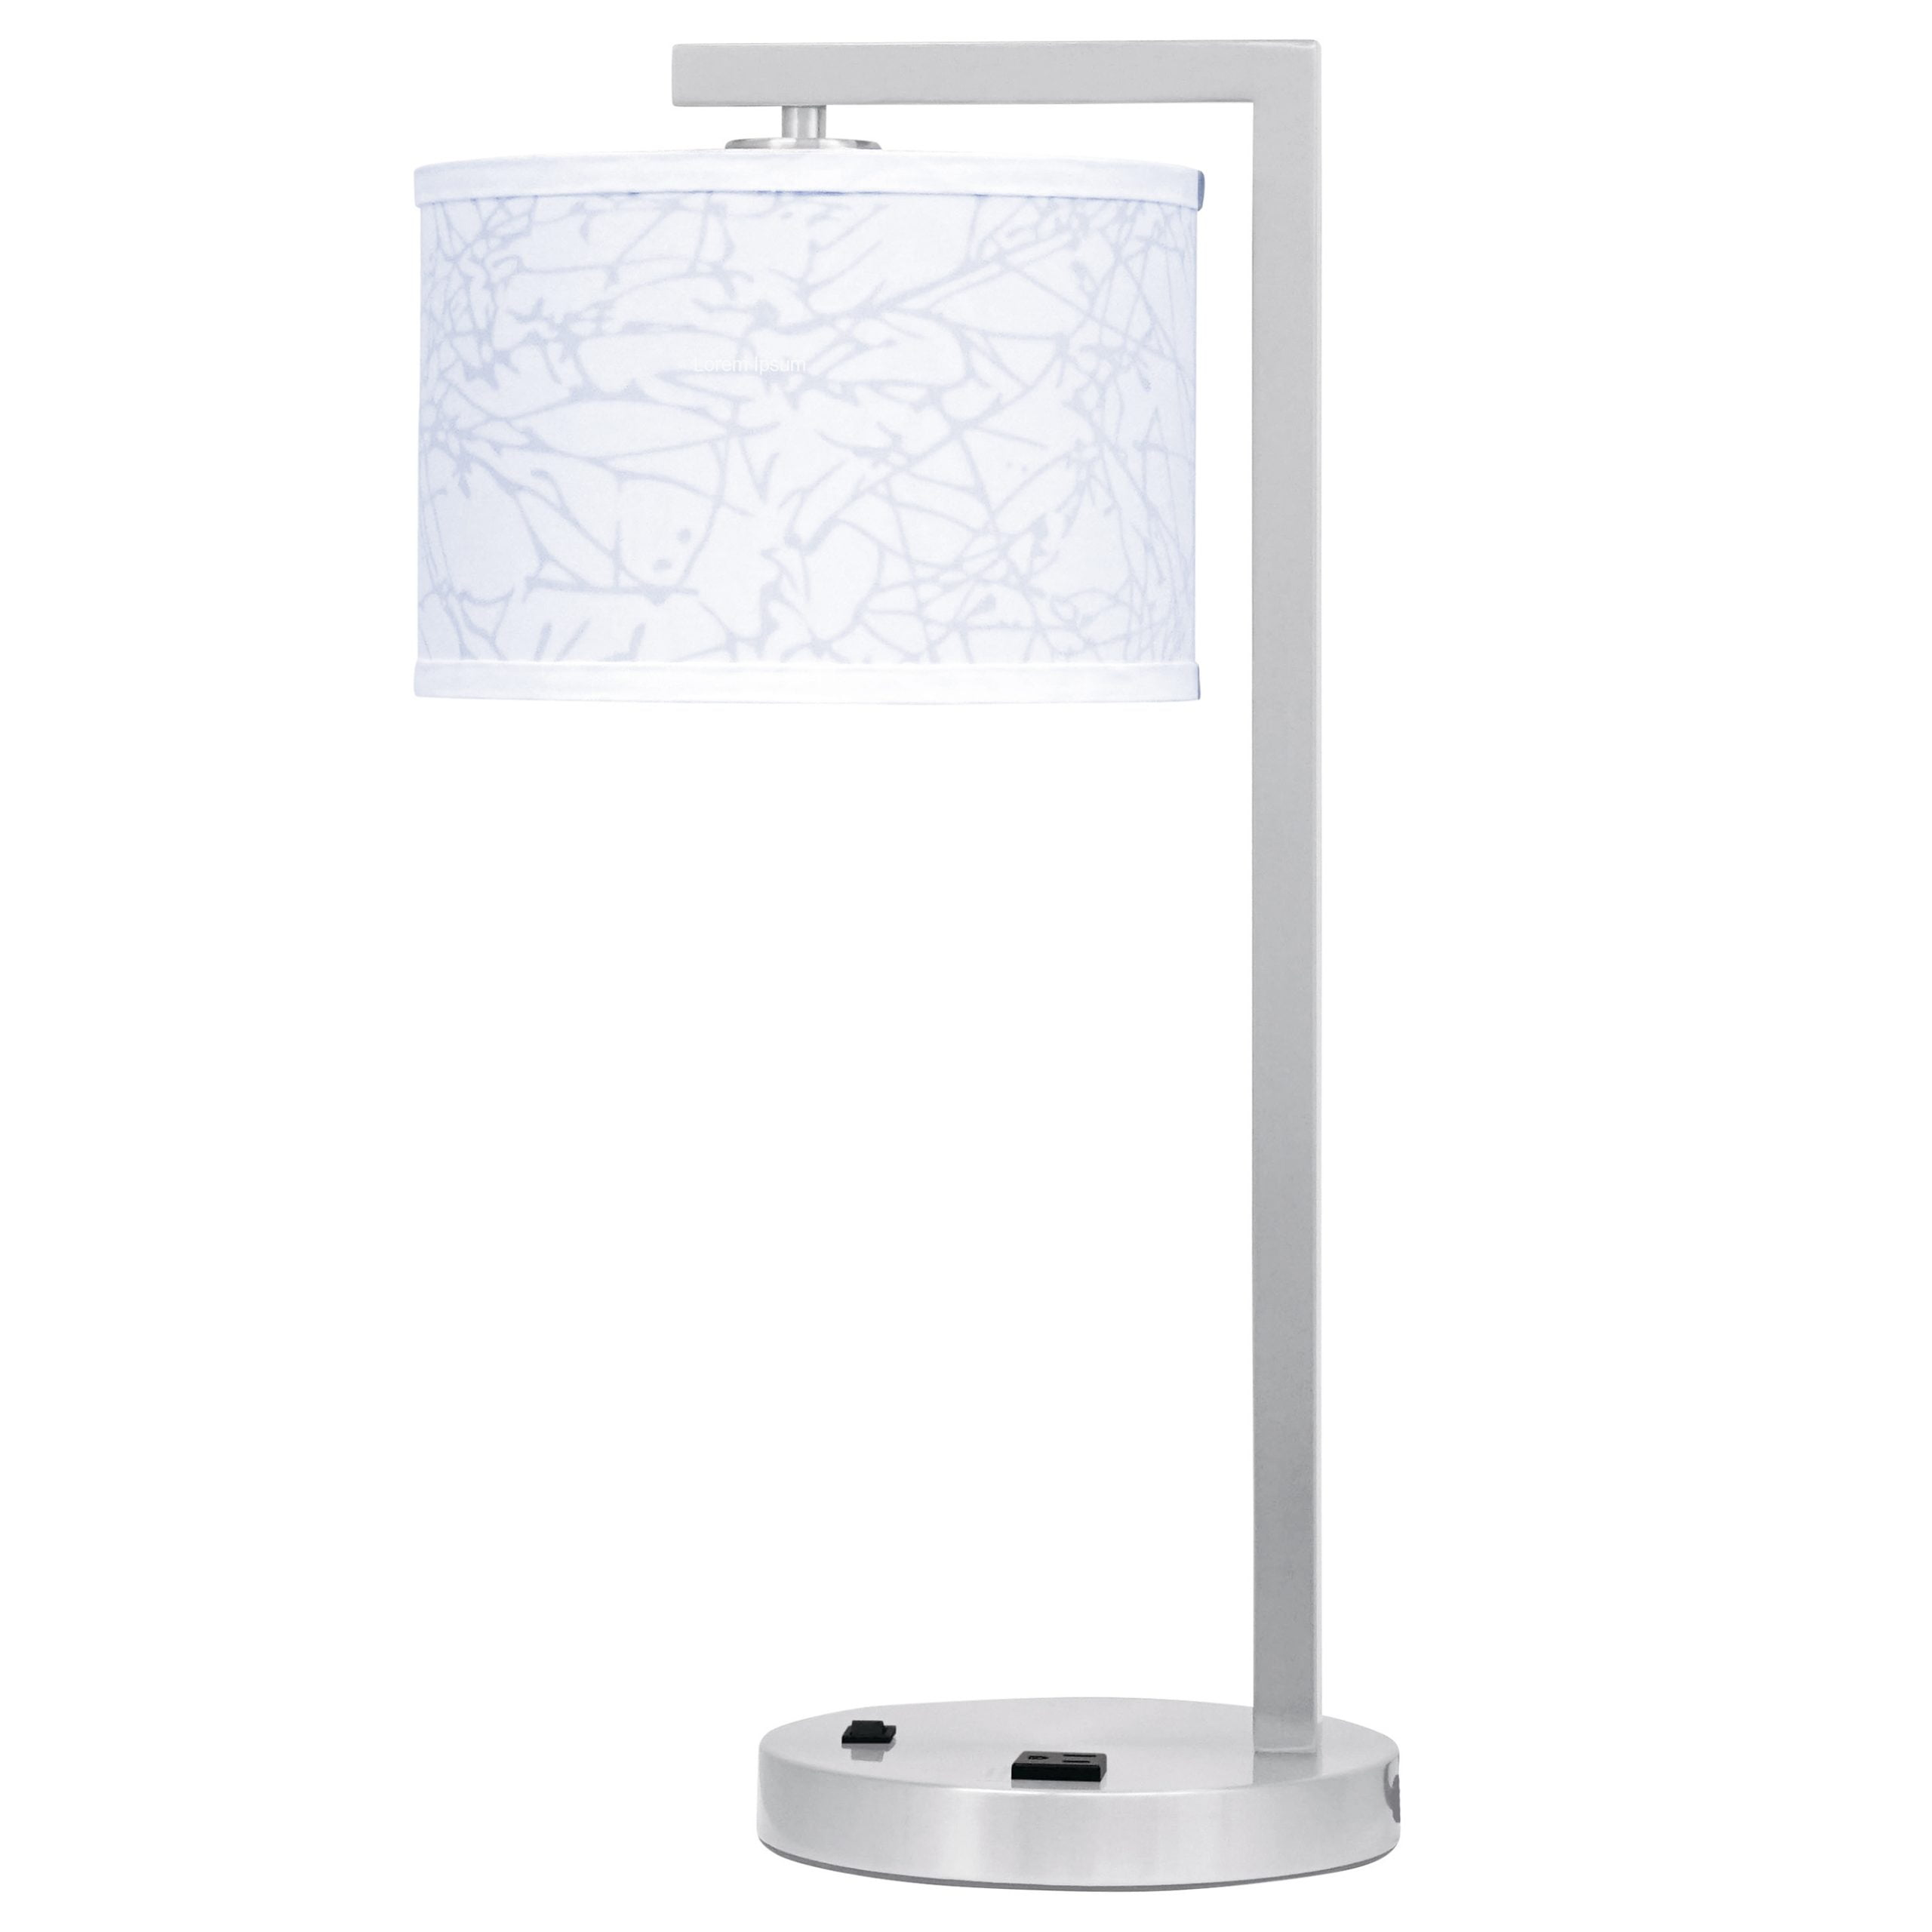 Mainstay Single Table Lamp with 1 Outlet